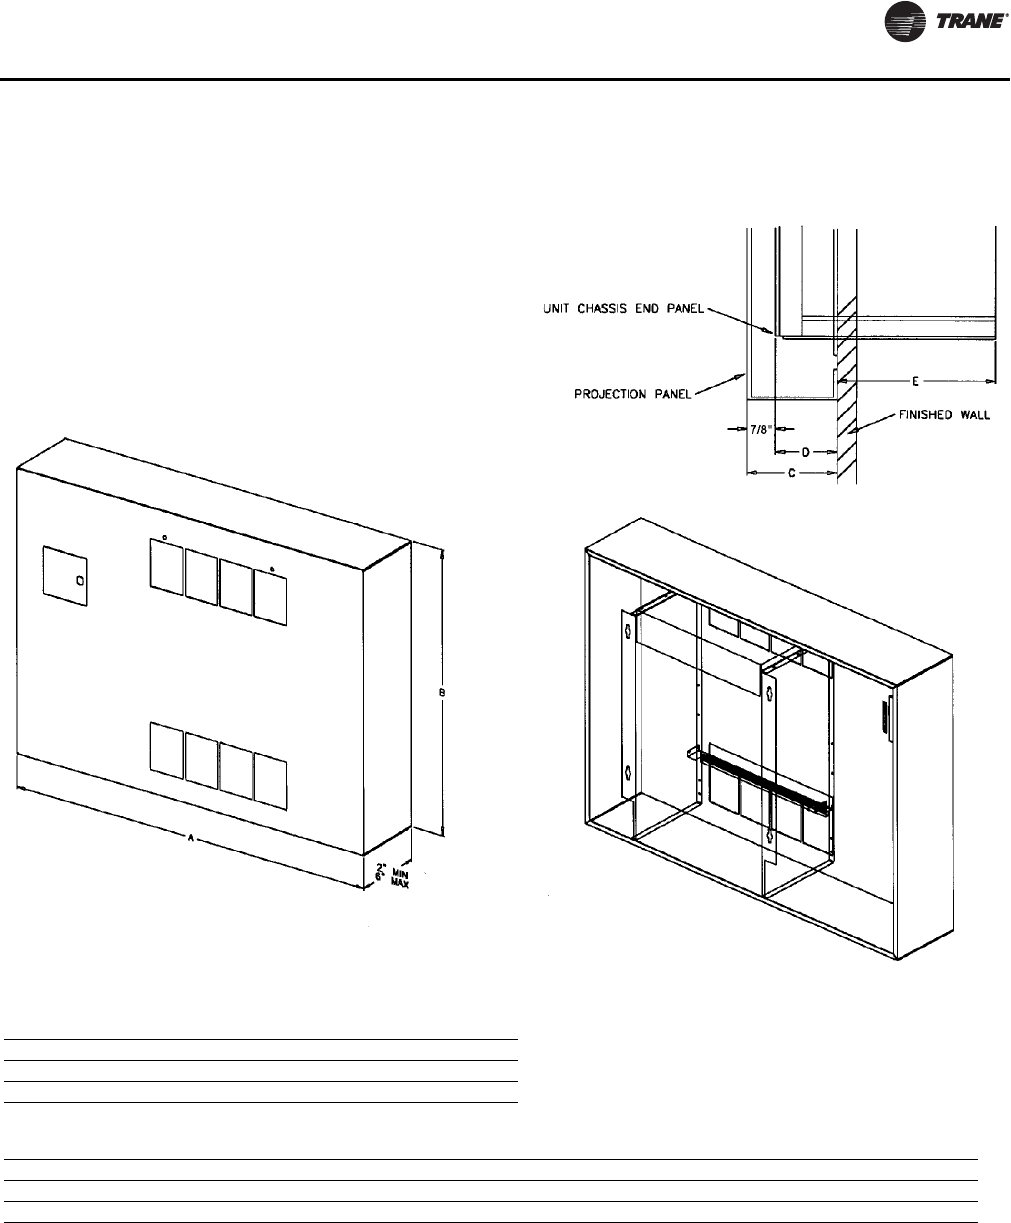 Dimensions and weights